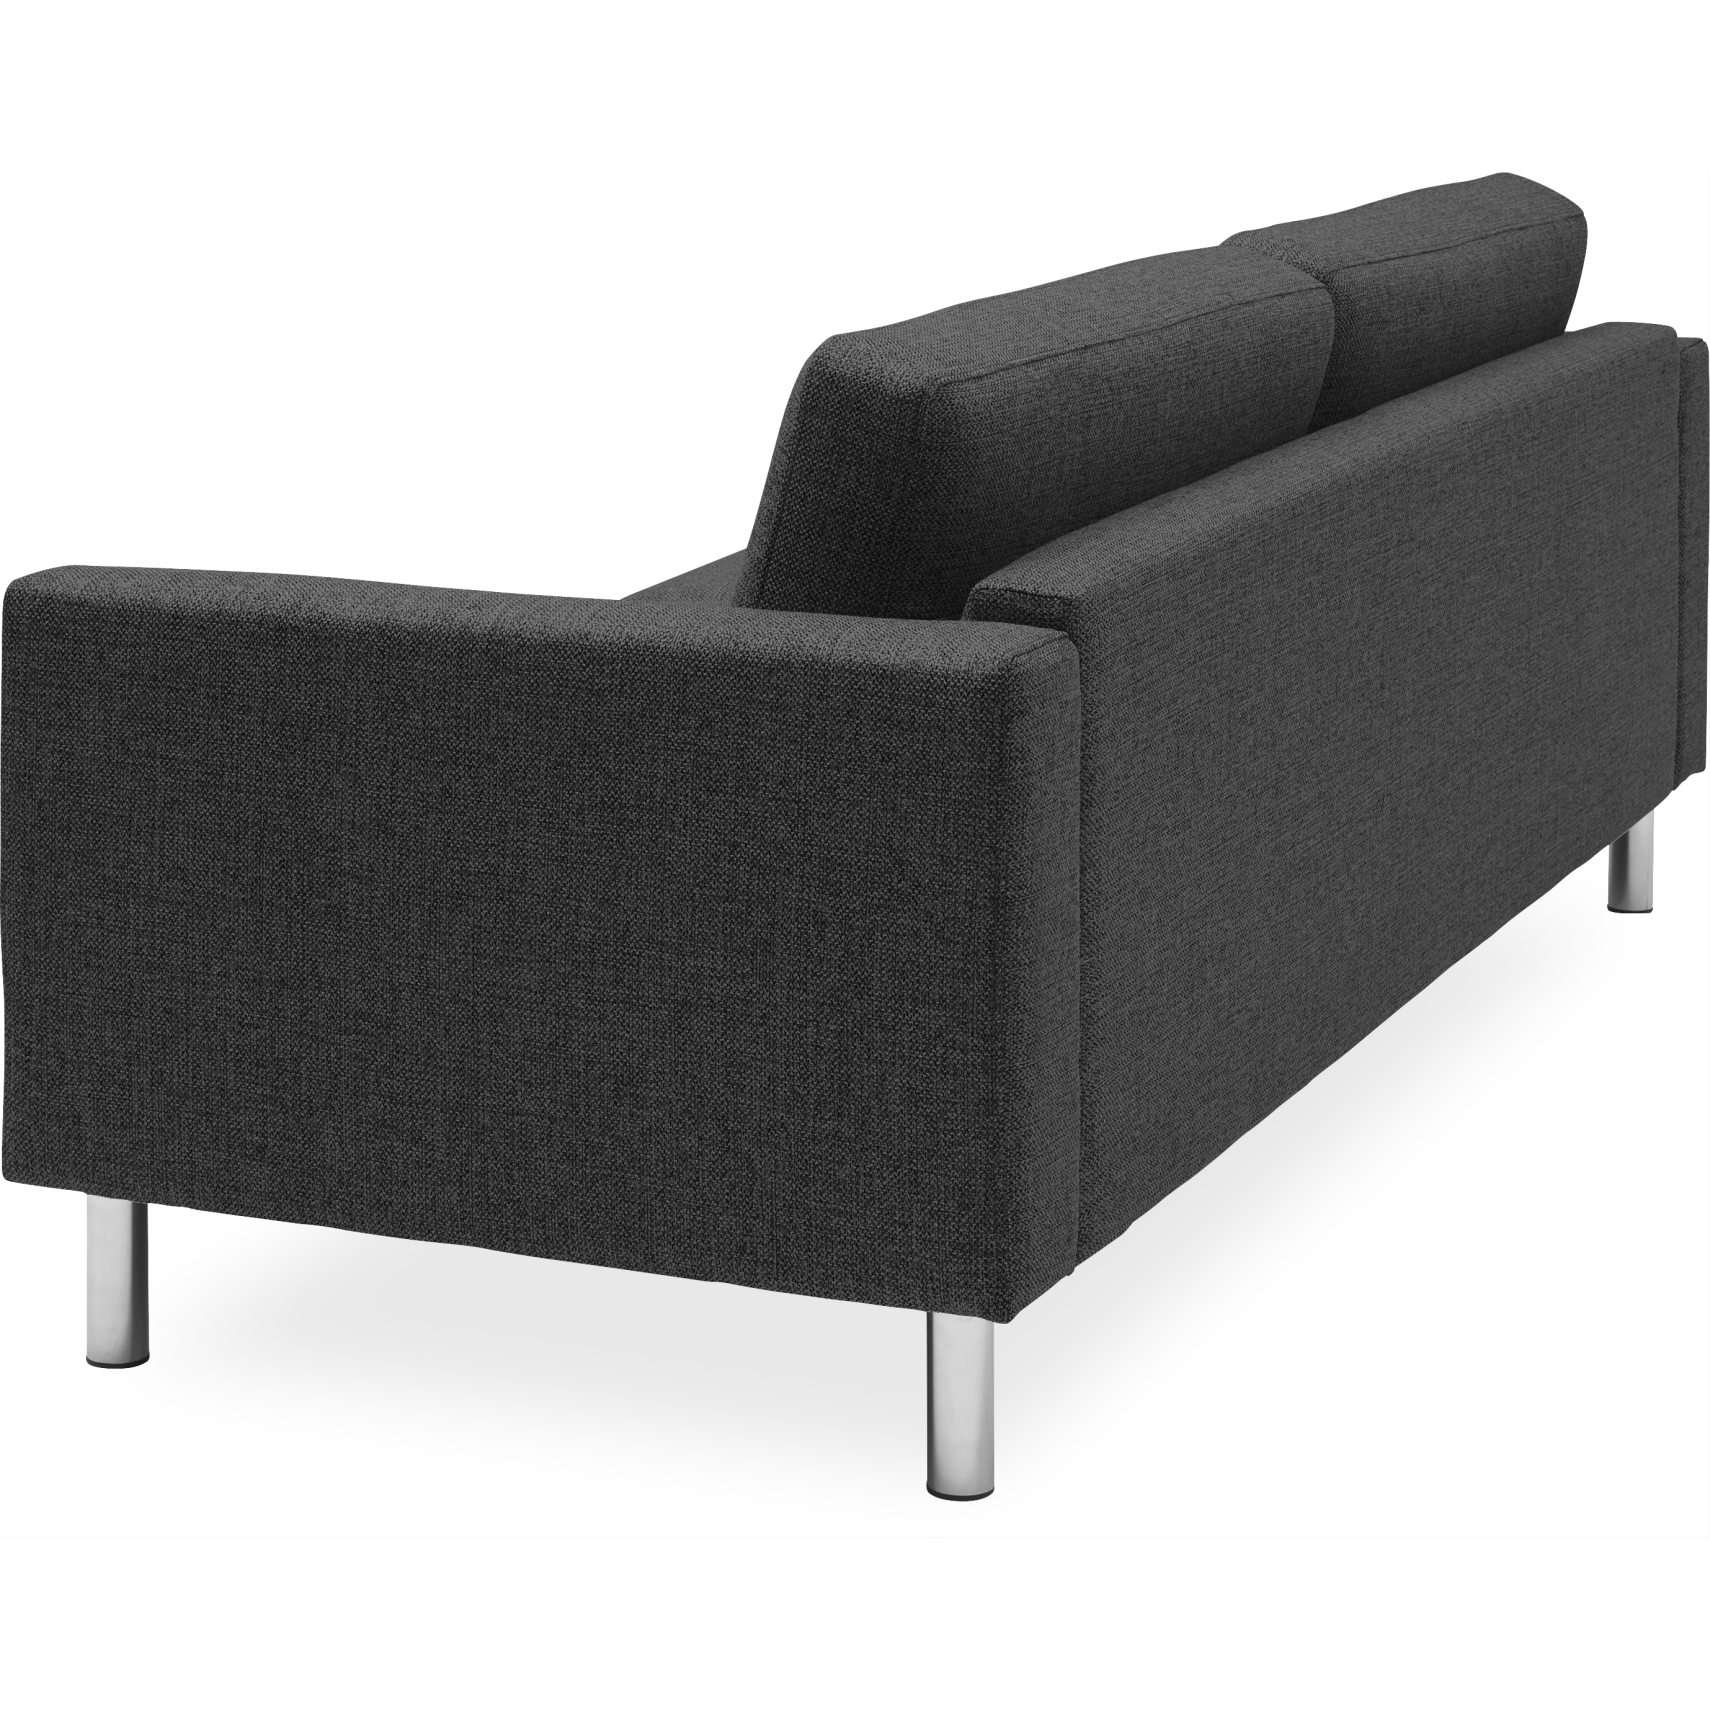 Cleveland 3 pers Sofa